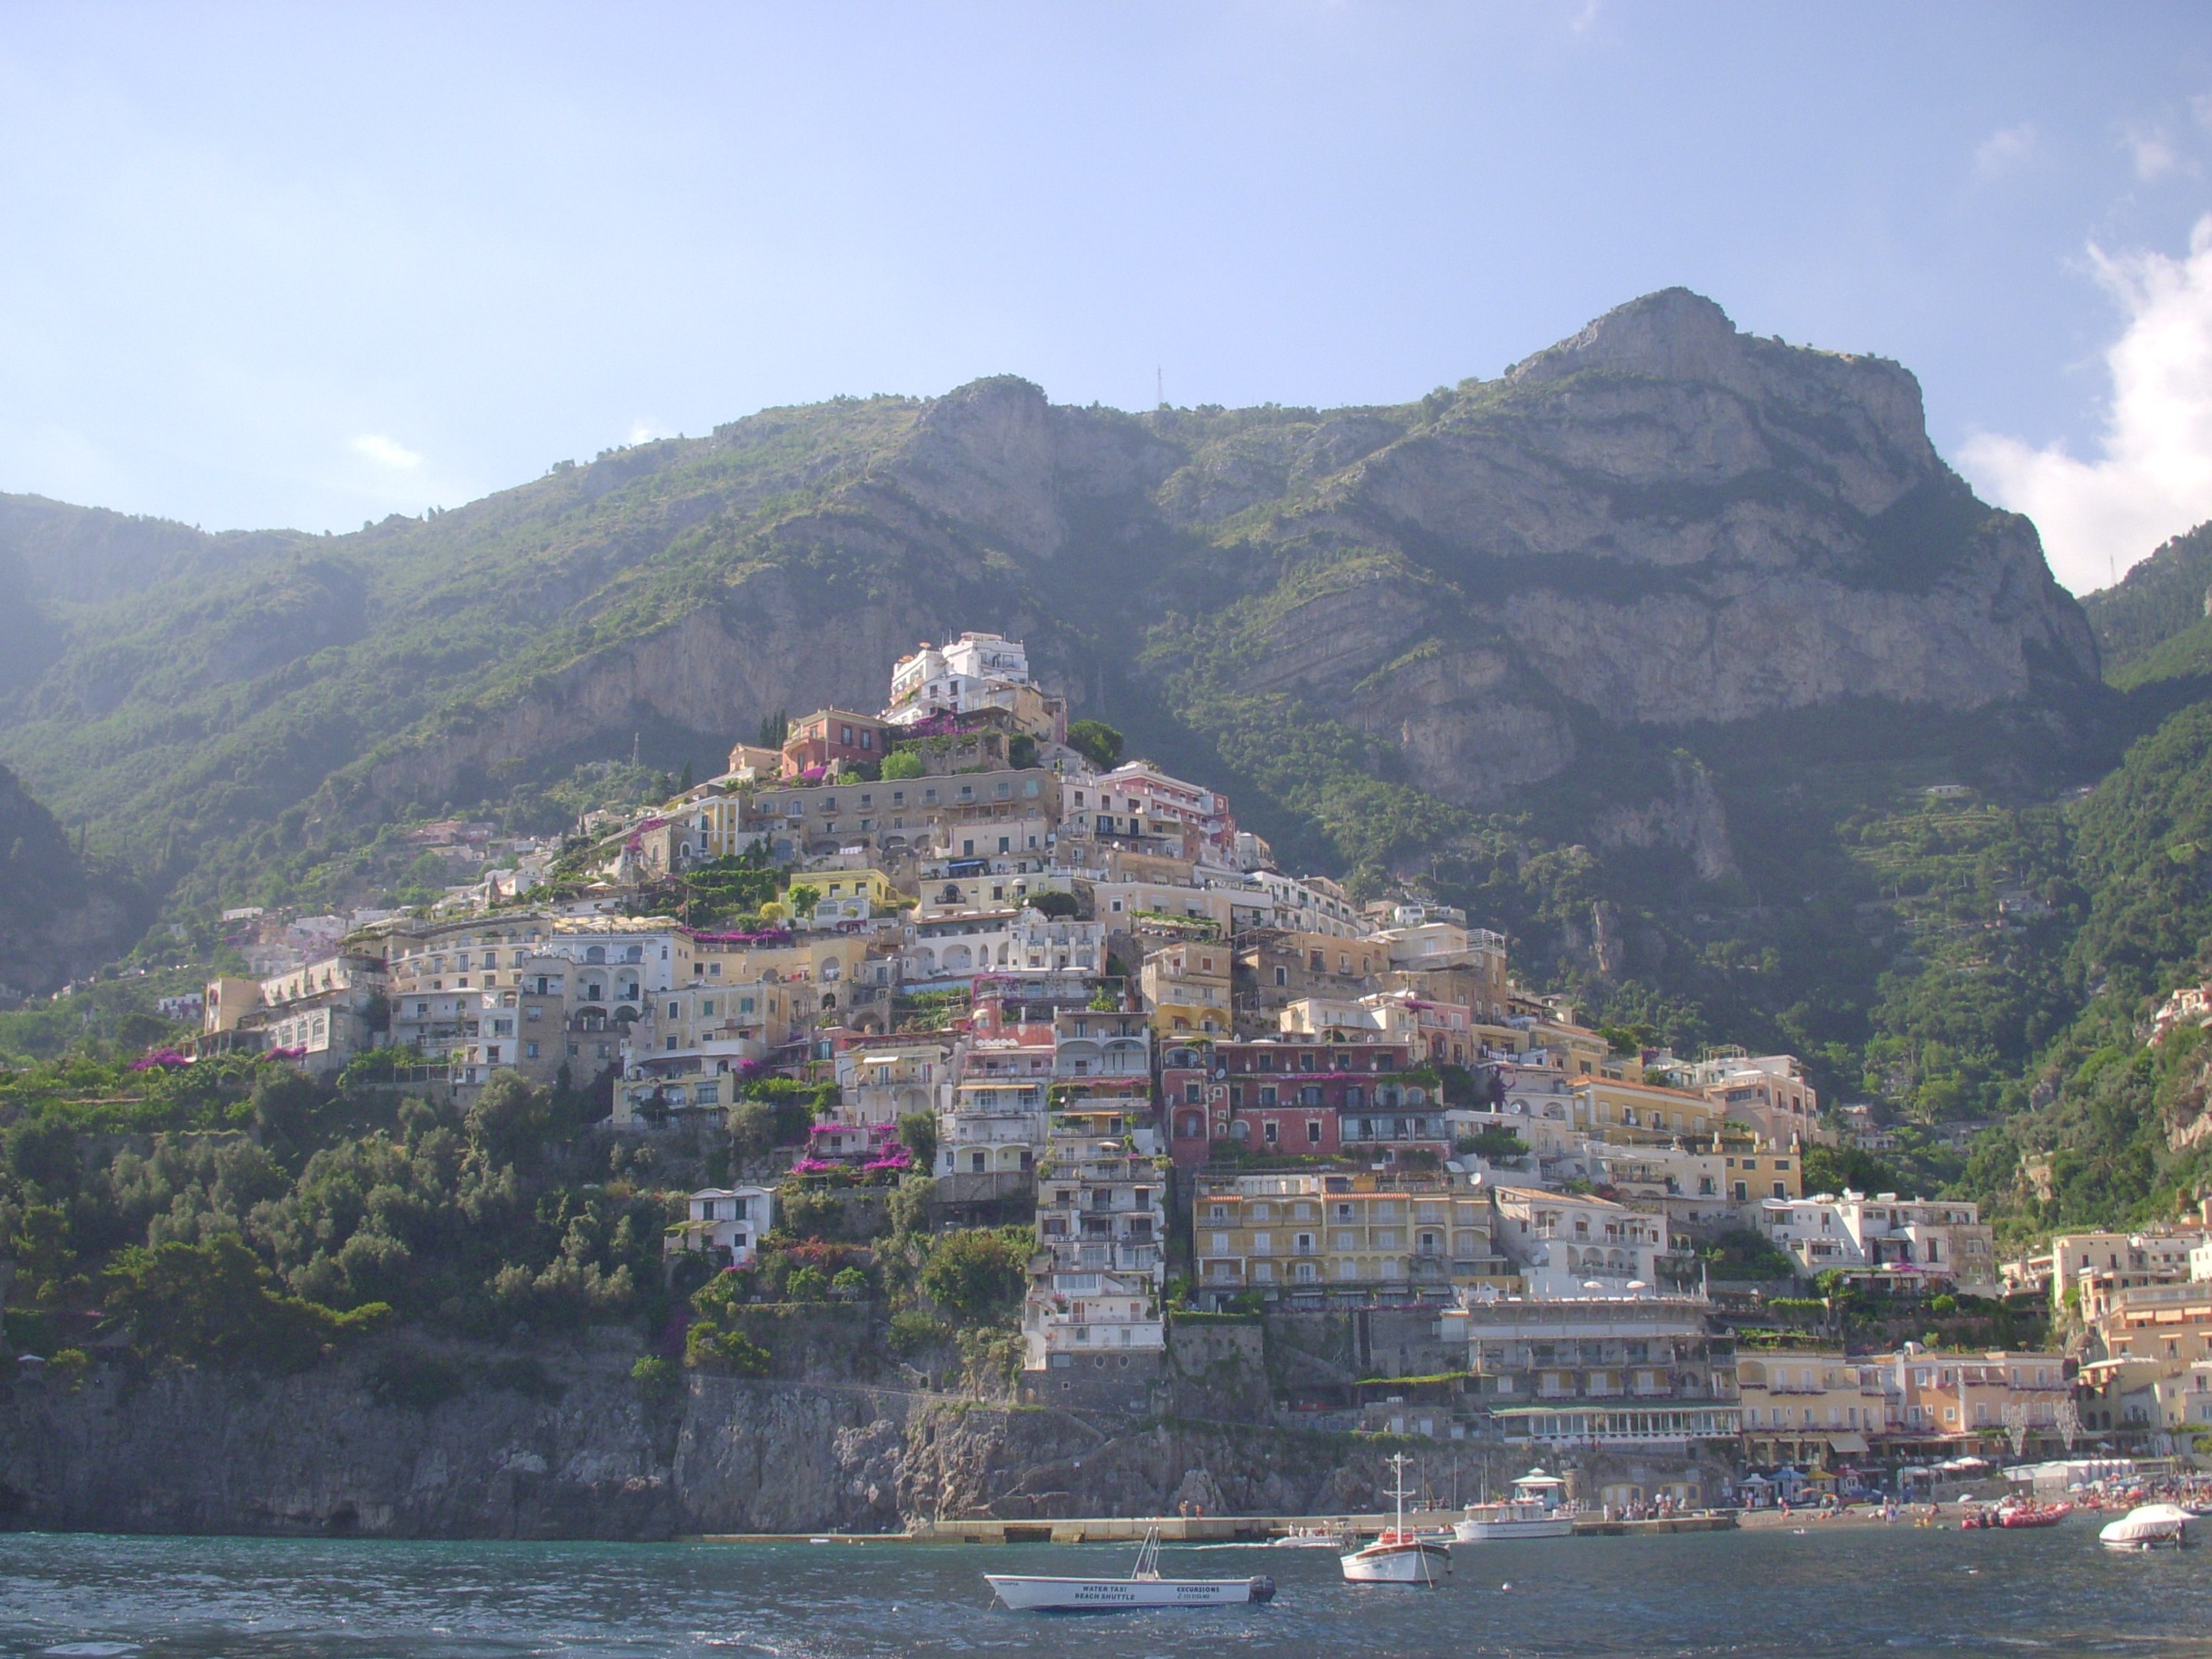 View from our boat of Positano